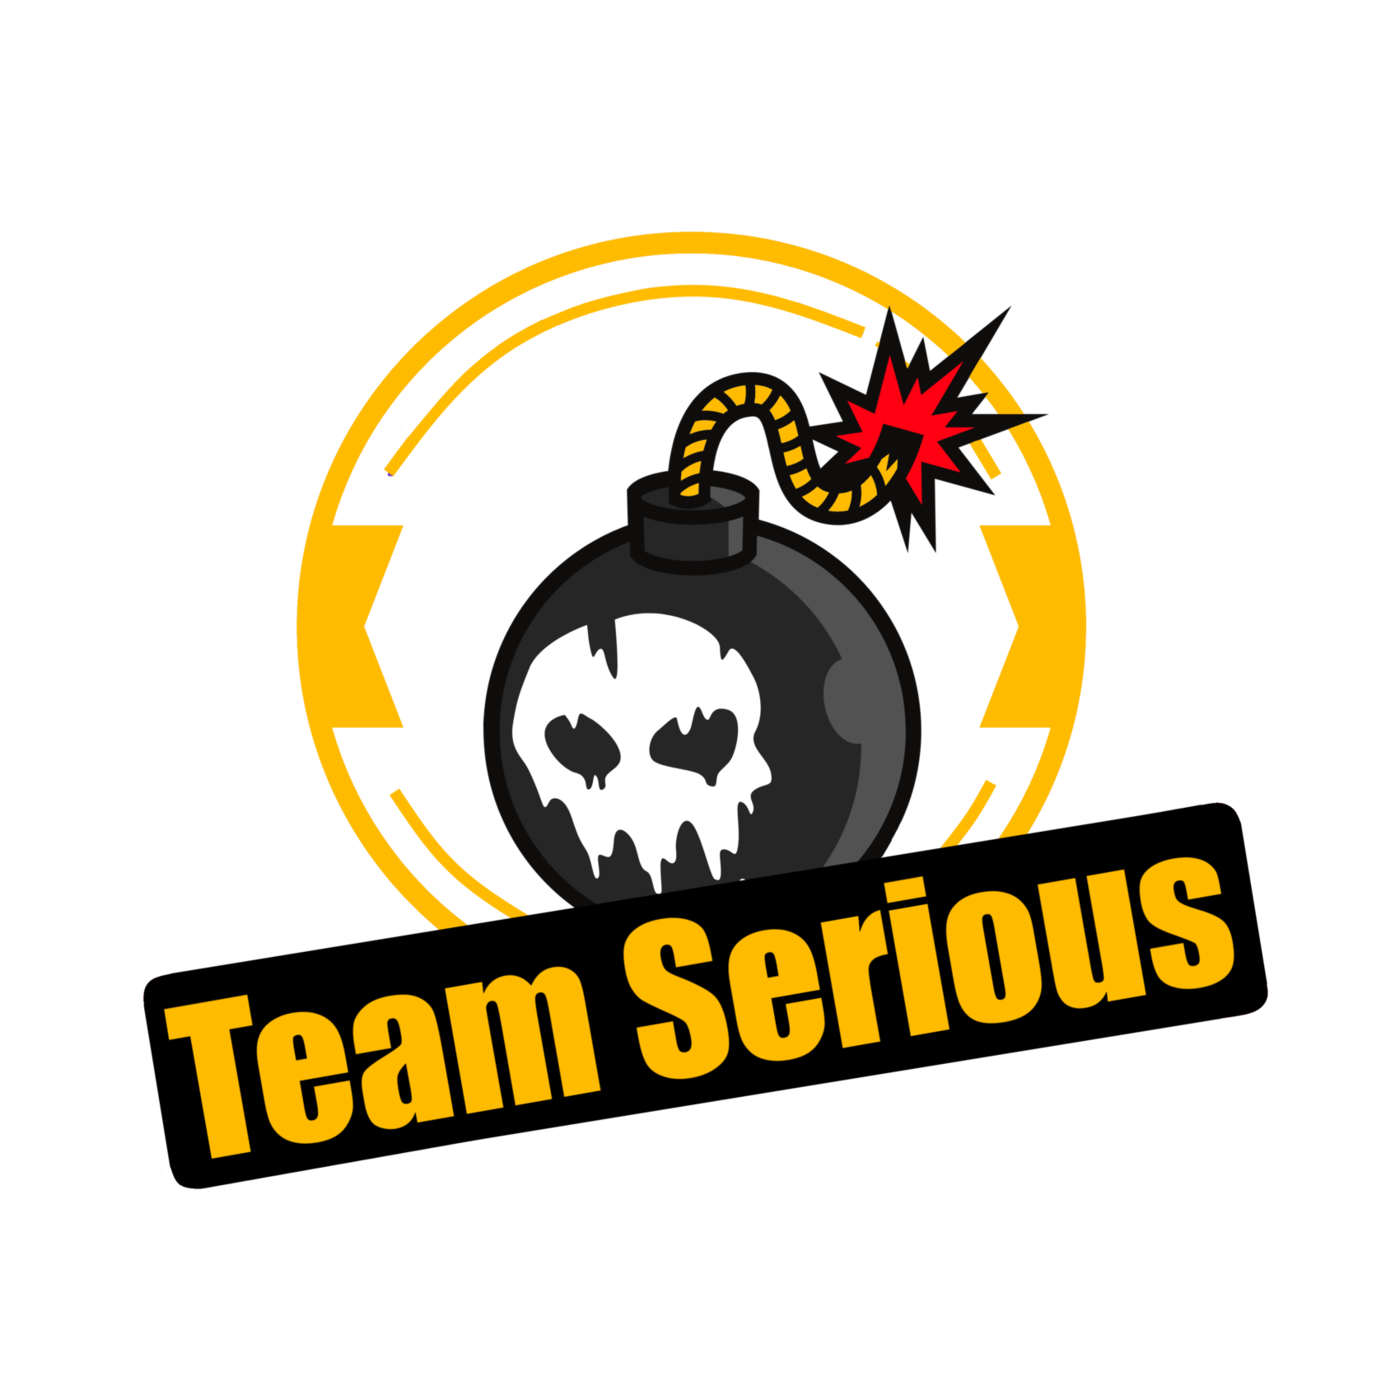 Team Serious DFW Talks - Silenttaz (Serious Ladies)